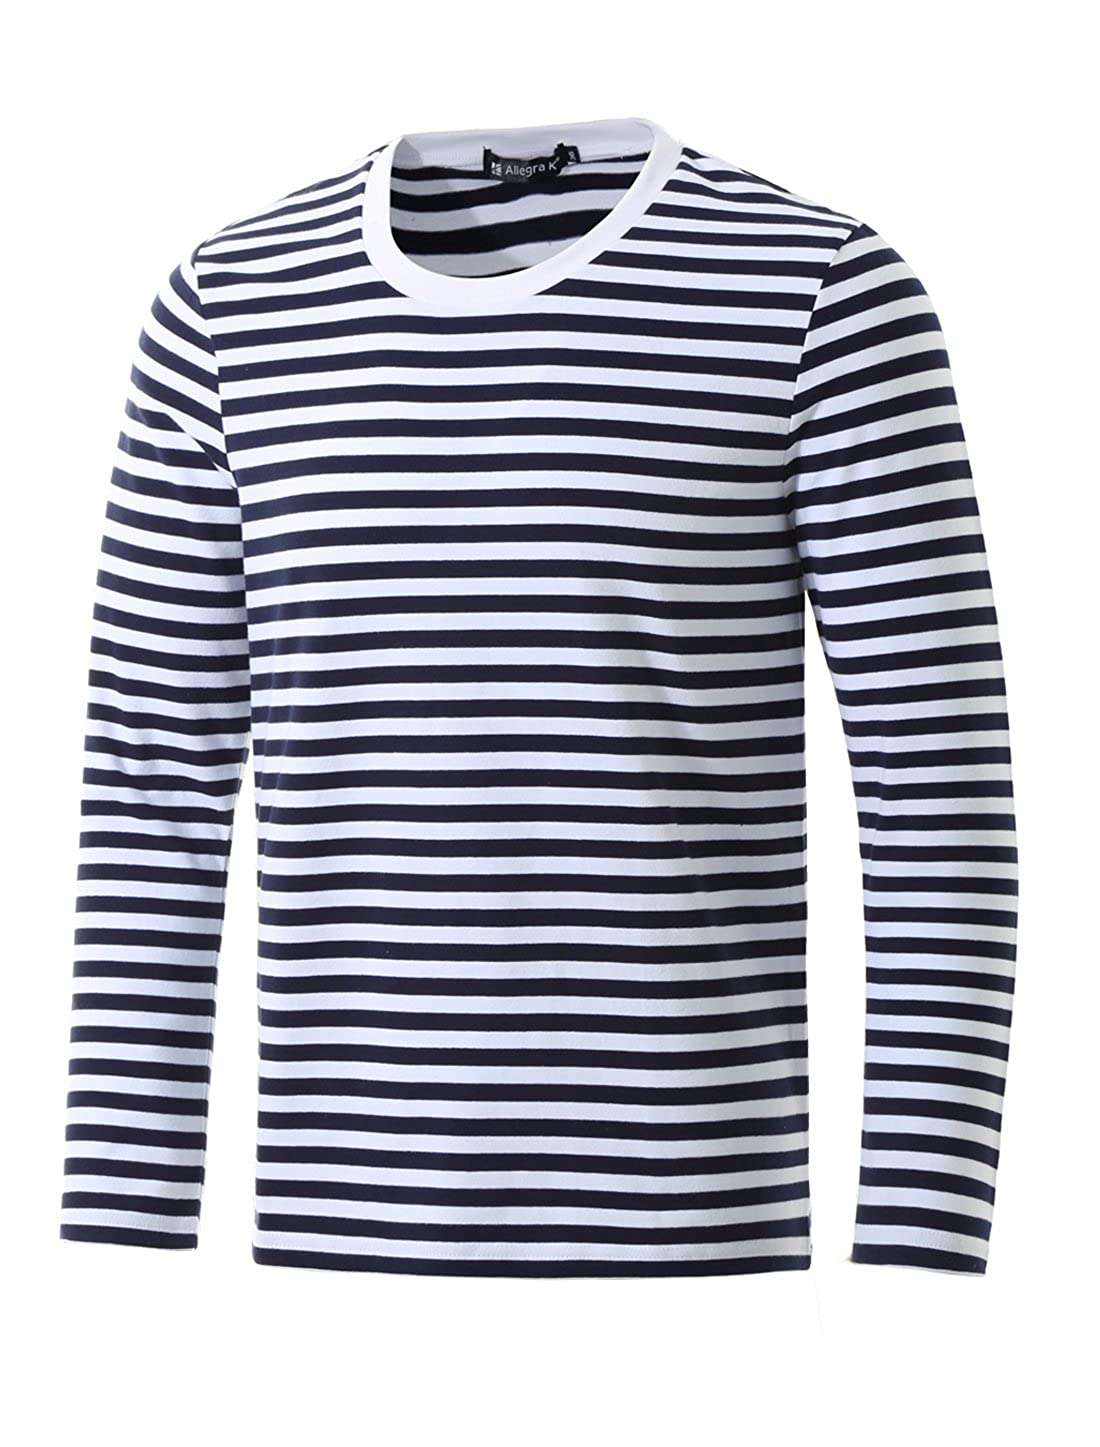 Men's Pirate Crew Neck Blue Striped Long Sleeves T-Shirt